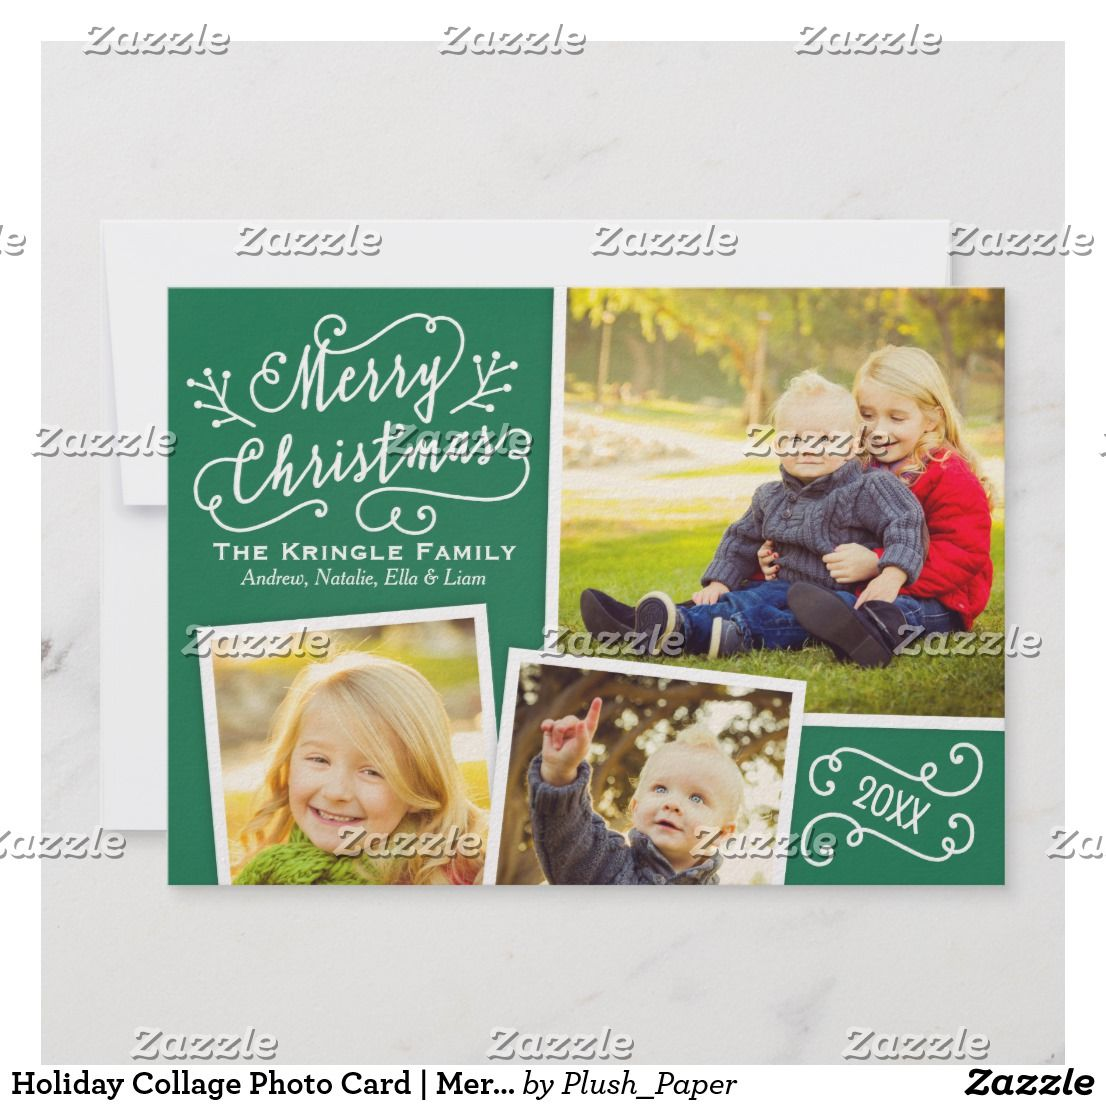 Holiday Collage Photo Card Merry Christmas Stylish Merry Christmas Photo Car Photo Collage Christmas Card Merry Christmas Card Photo Merry Christmas Photos